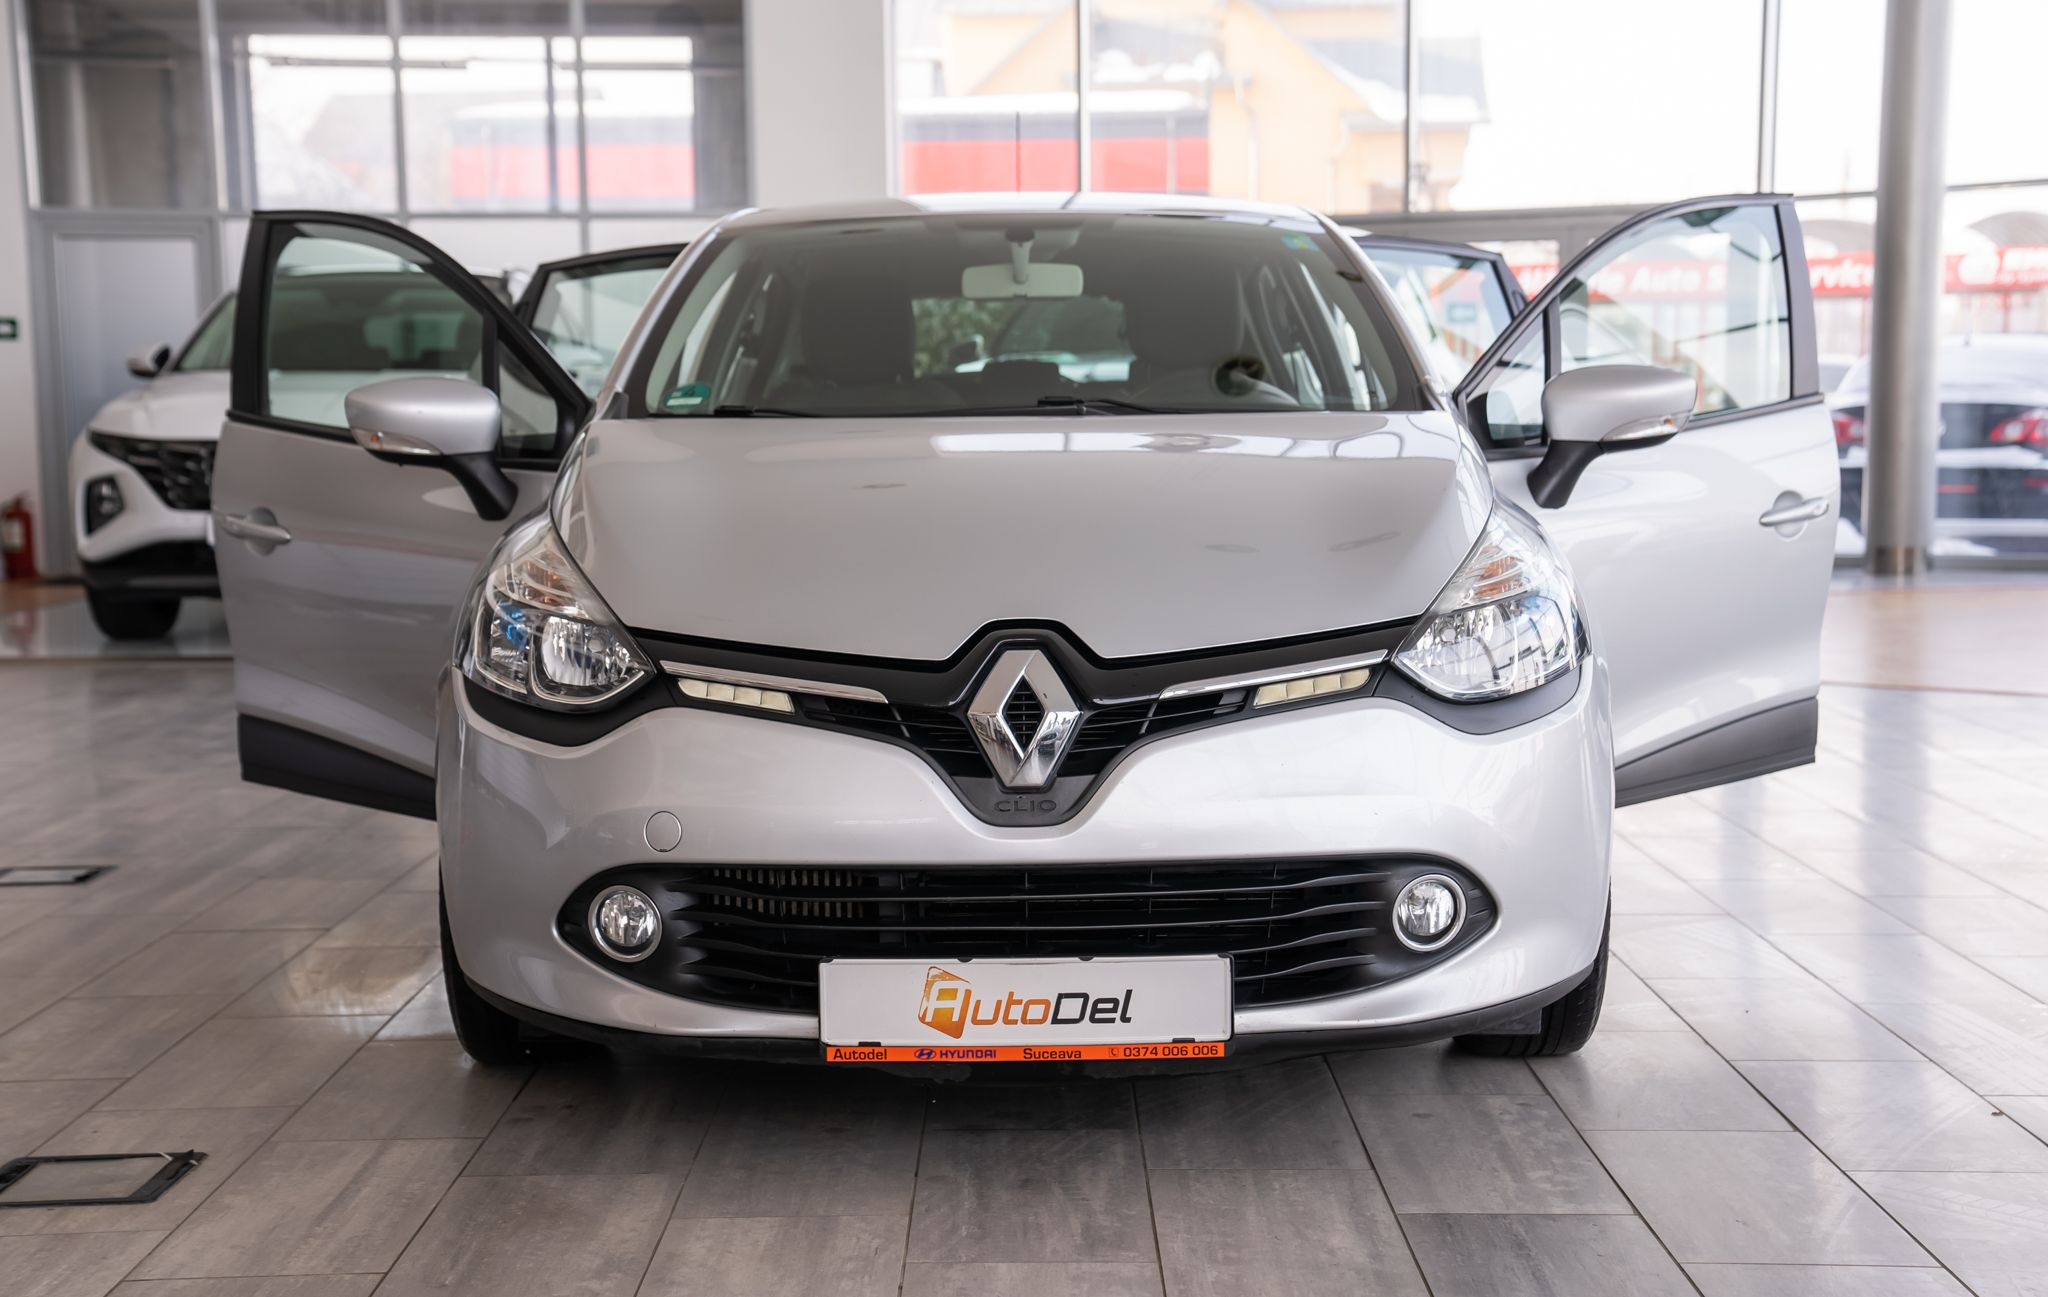 Renault Clio 2013 Second Hand